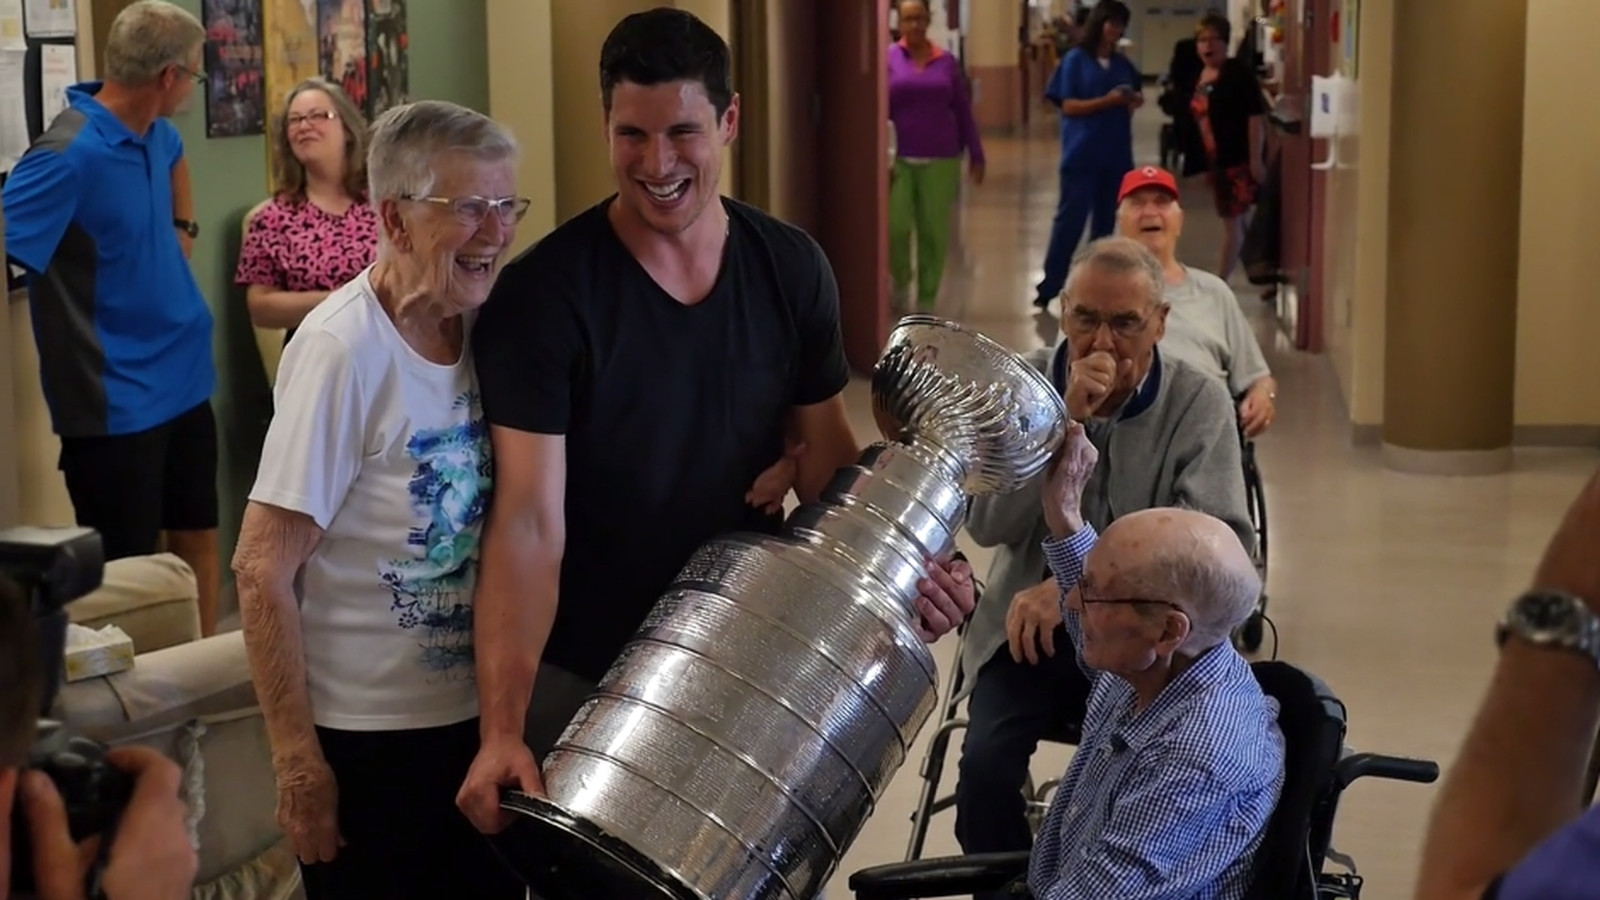 Sidney_crosby_visits_the_camp_hill_veterans_memorial_building_at_the_qeii_in_halifax_on_vimeo.0.0